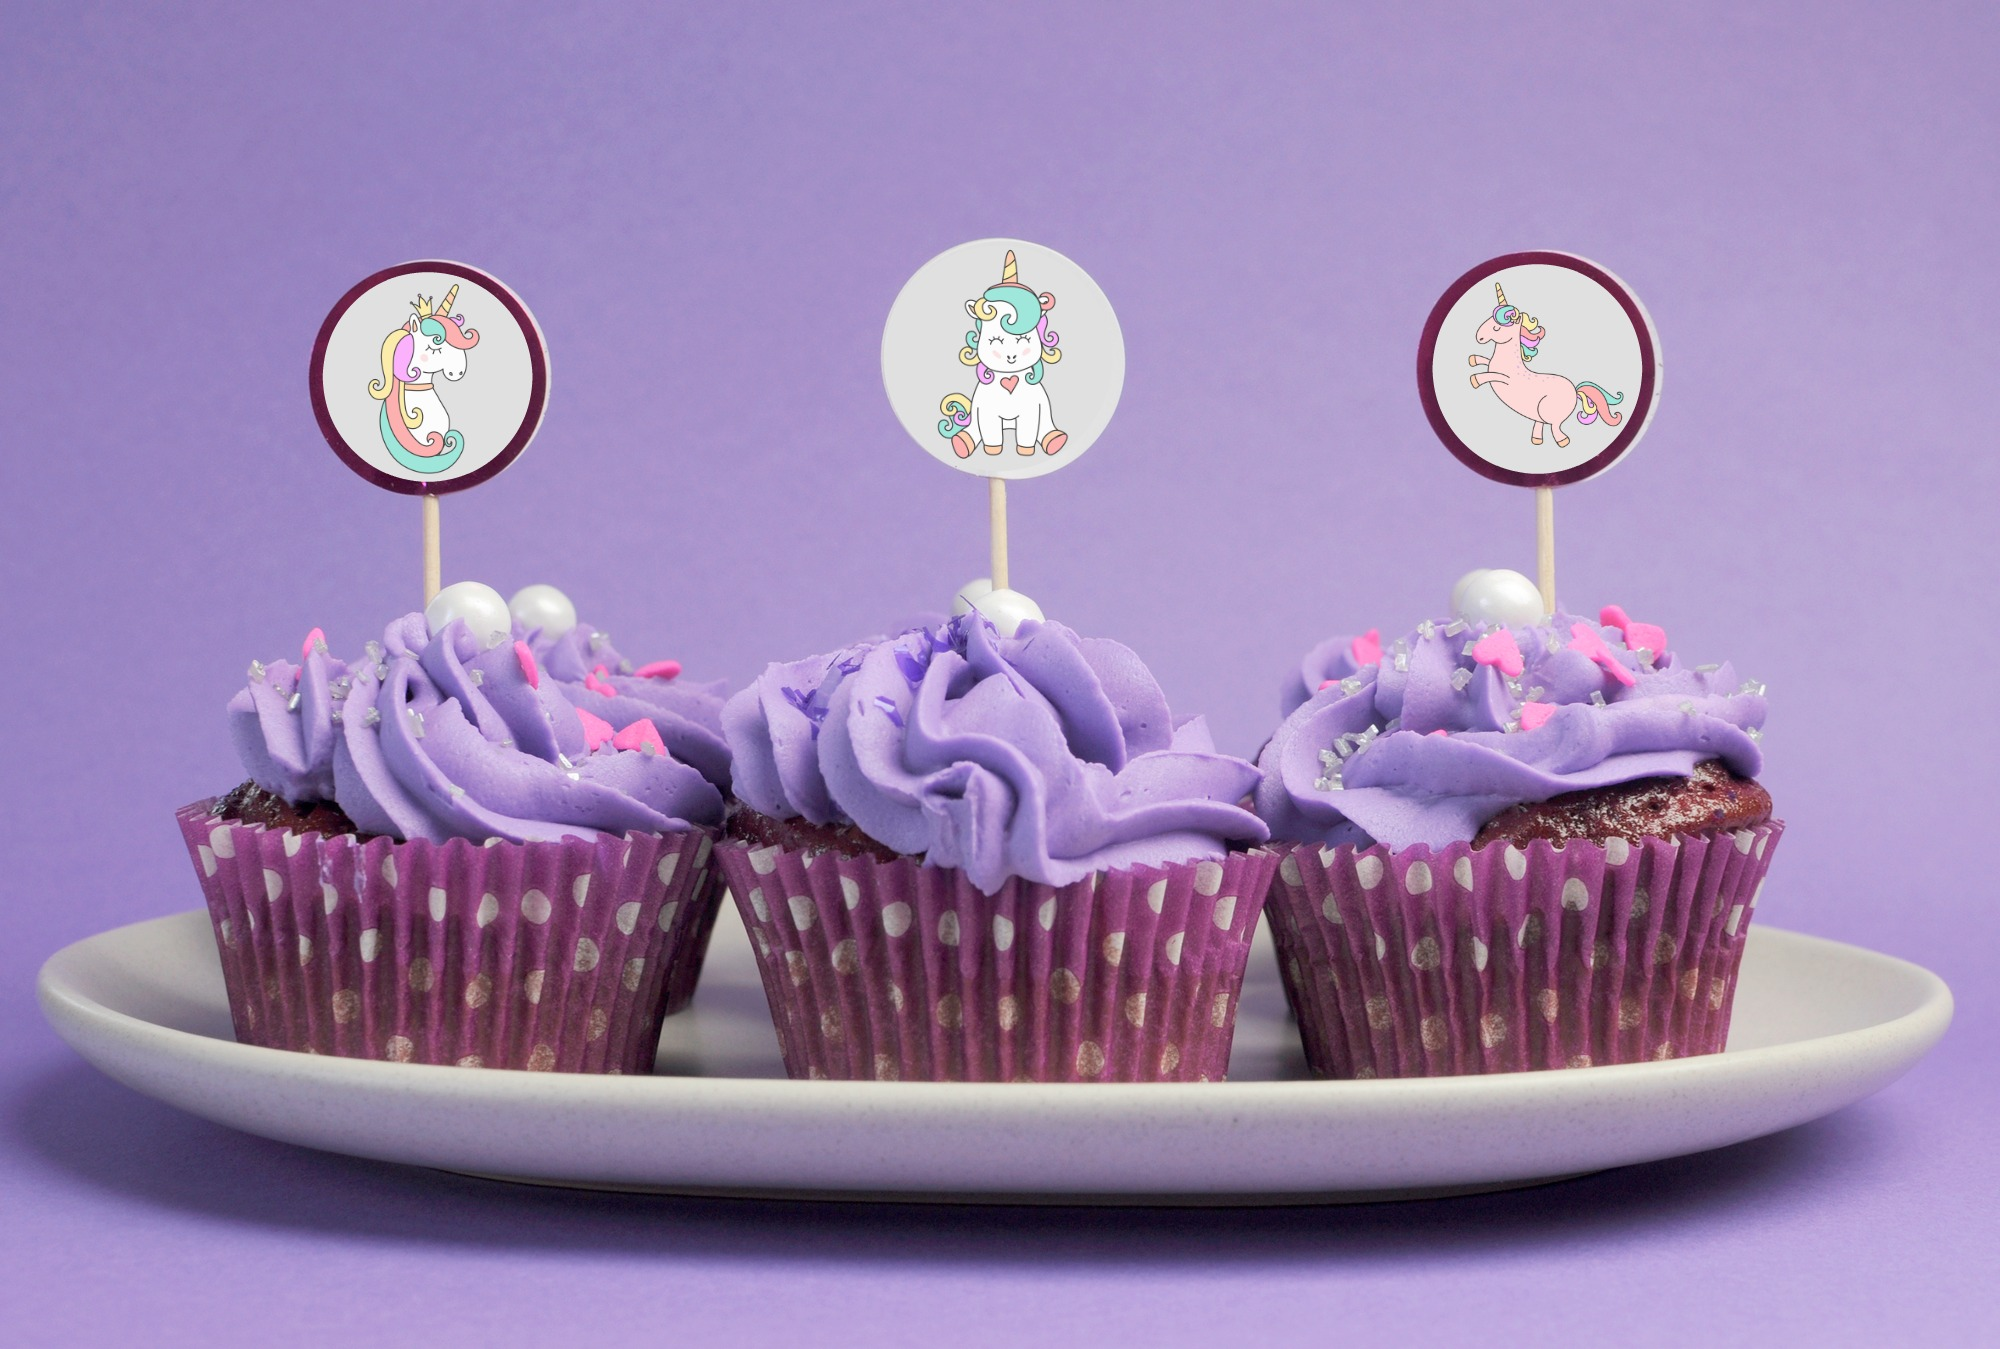 photograph regarding Unicorn Cupcake Toppers Printable titled Free of charge Printable Unicorn Cupcake Toppers - Daily life. Relatives. Contentment